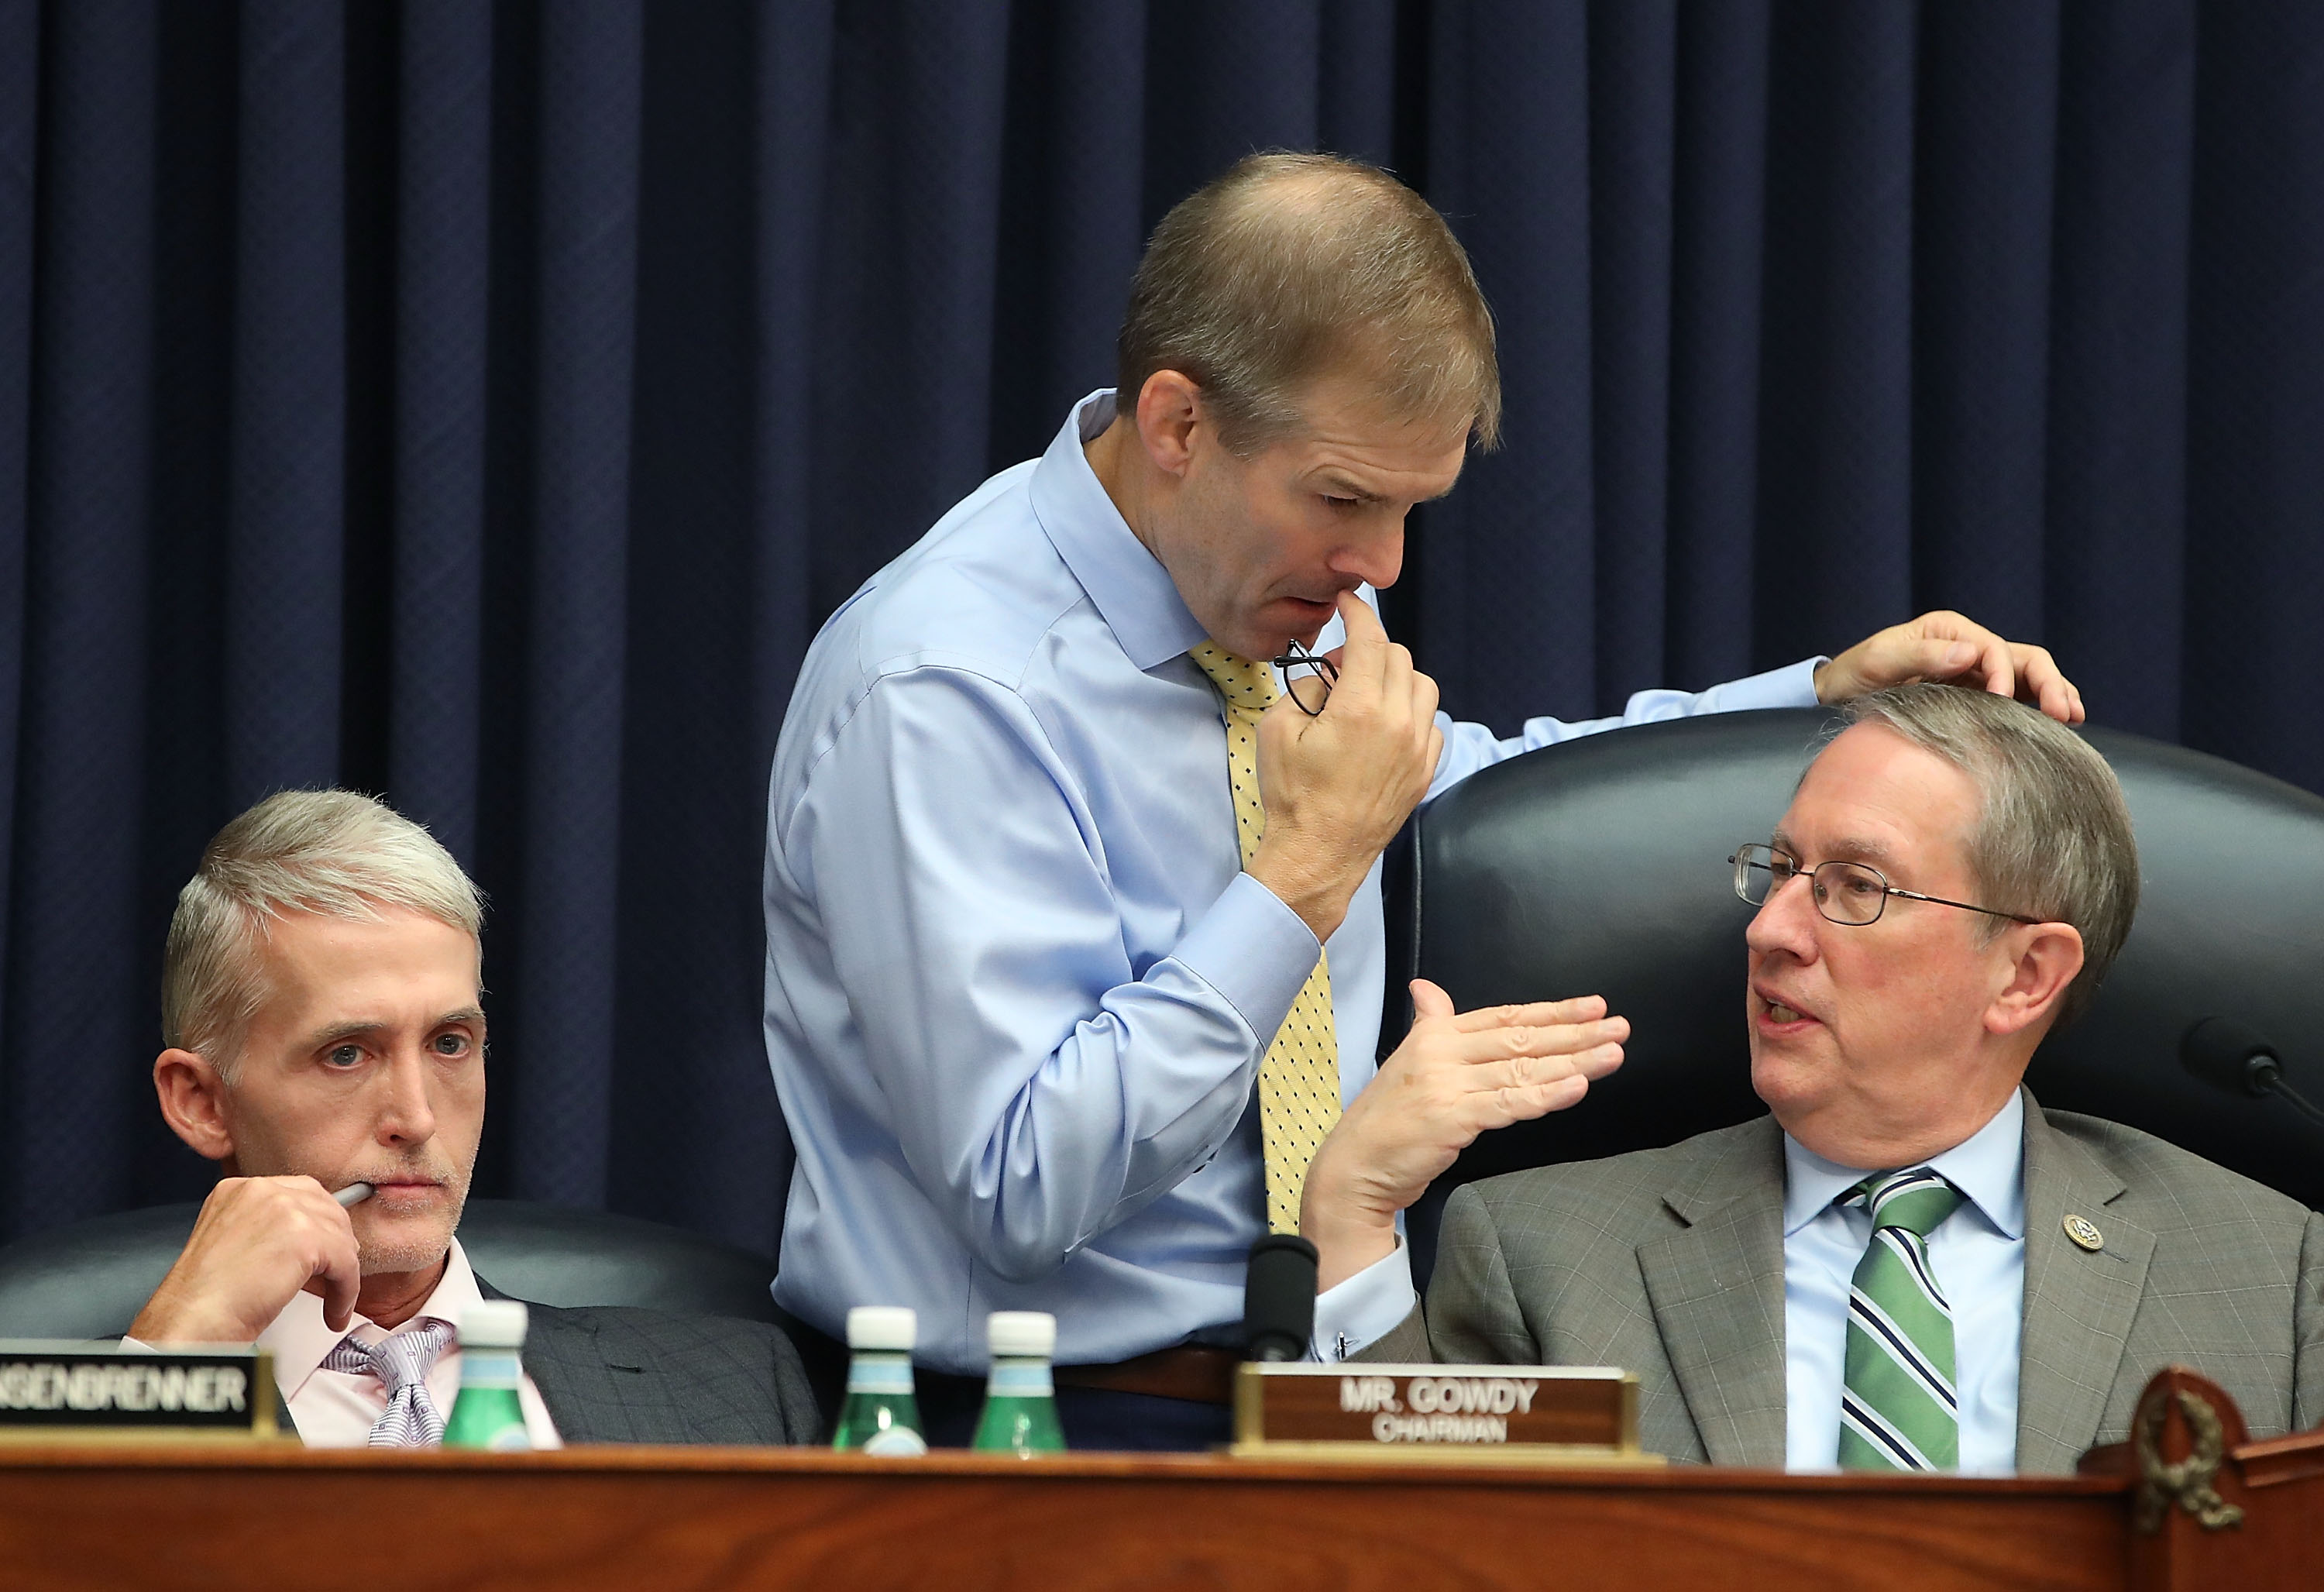 Goodlatte-Jordan-and-Gowdy-in-the-Rayburn-House-Office-Building